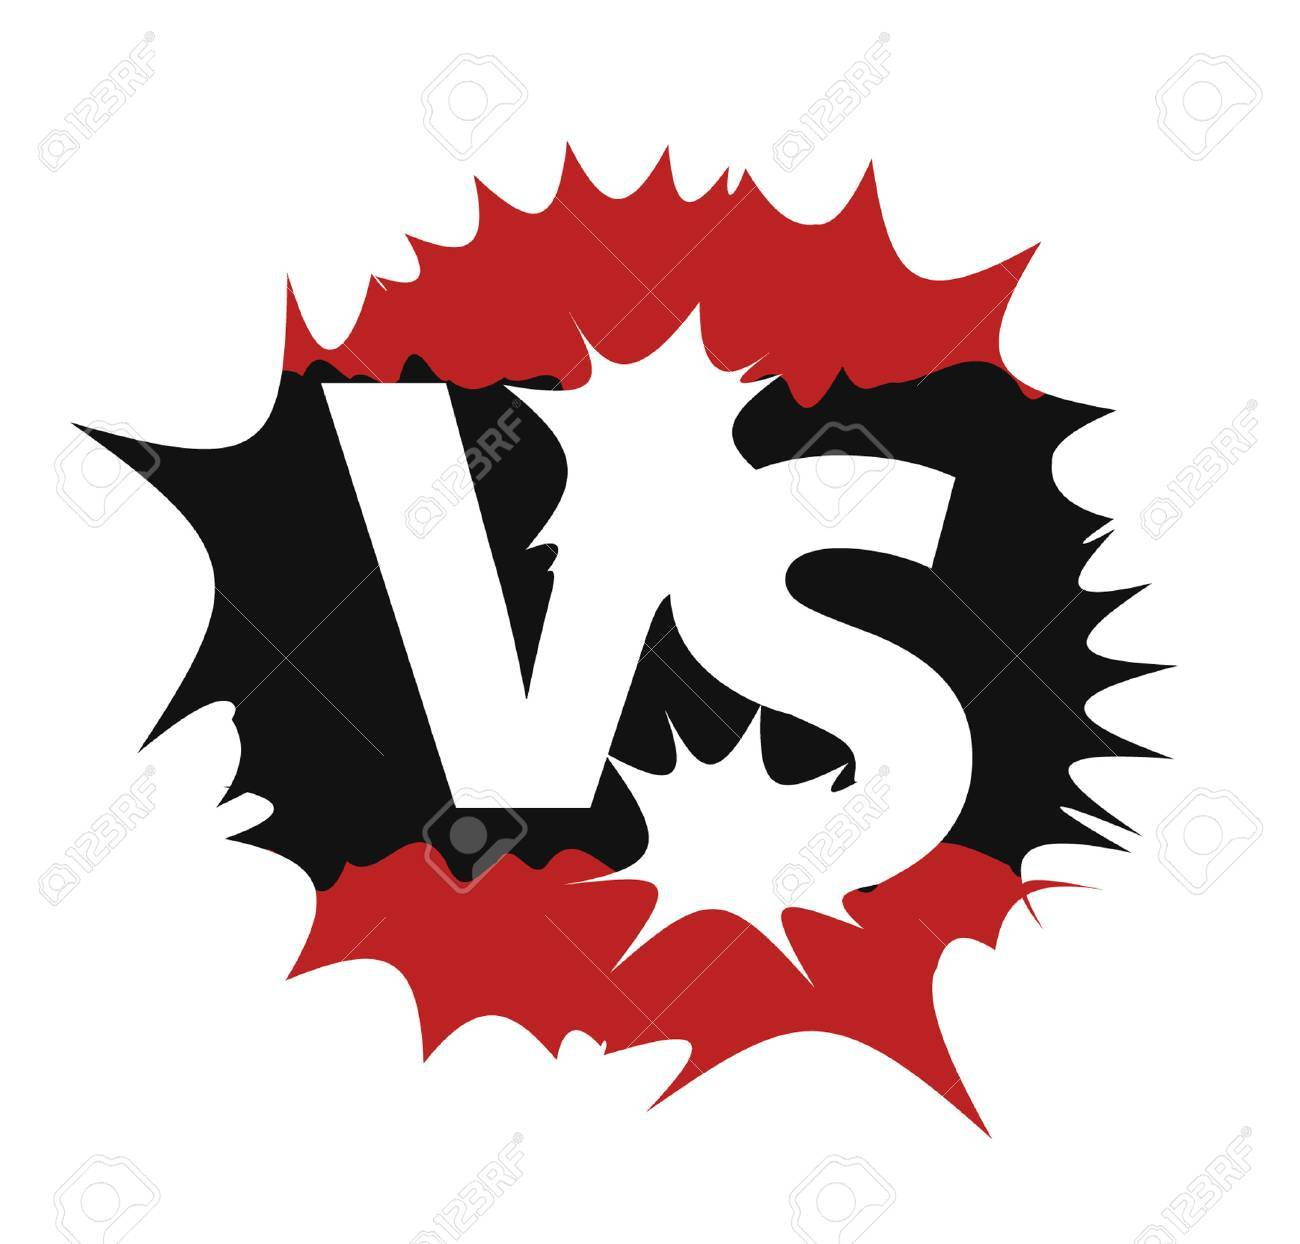 Versus Sign Black And Red Symbol Vs